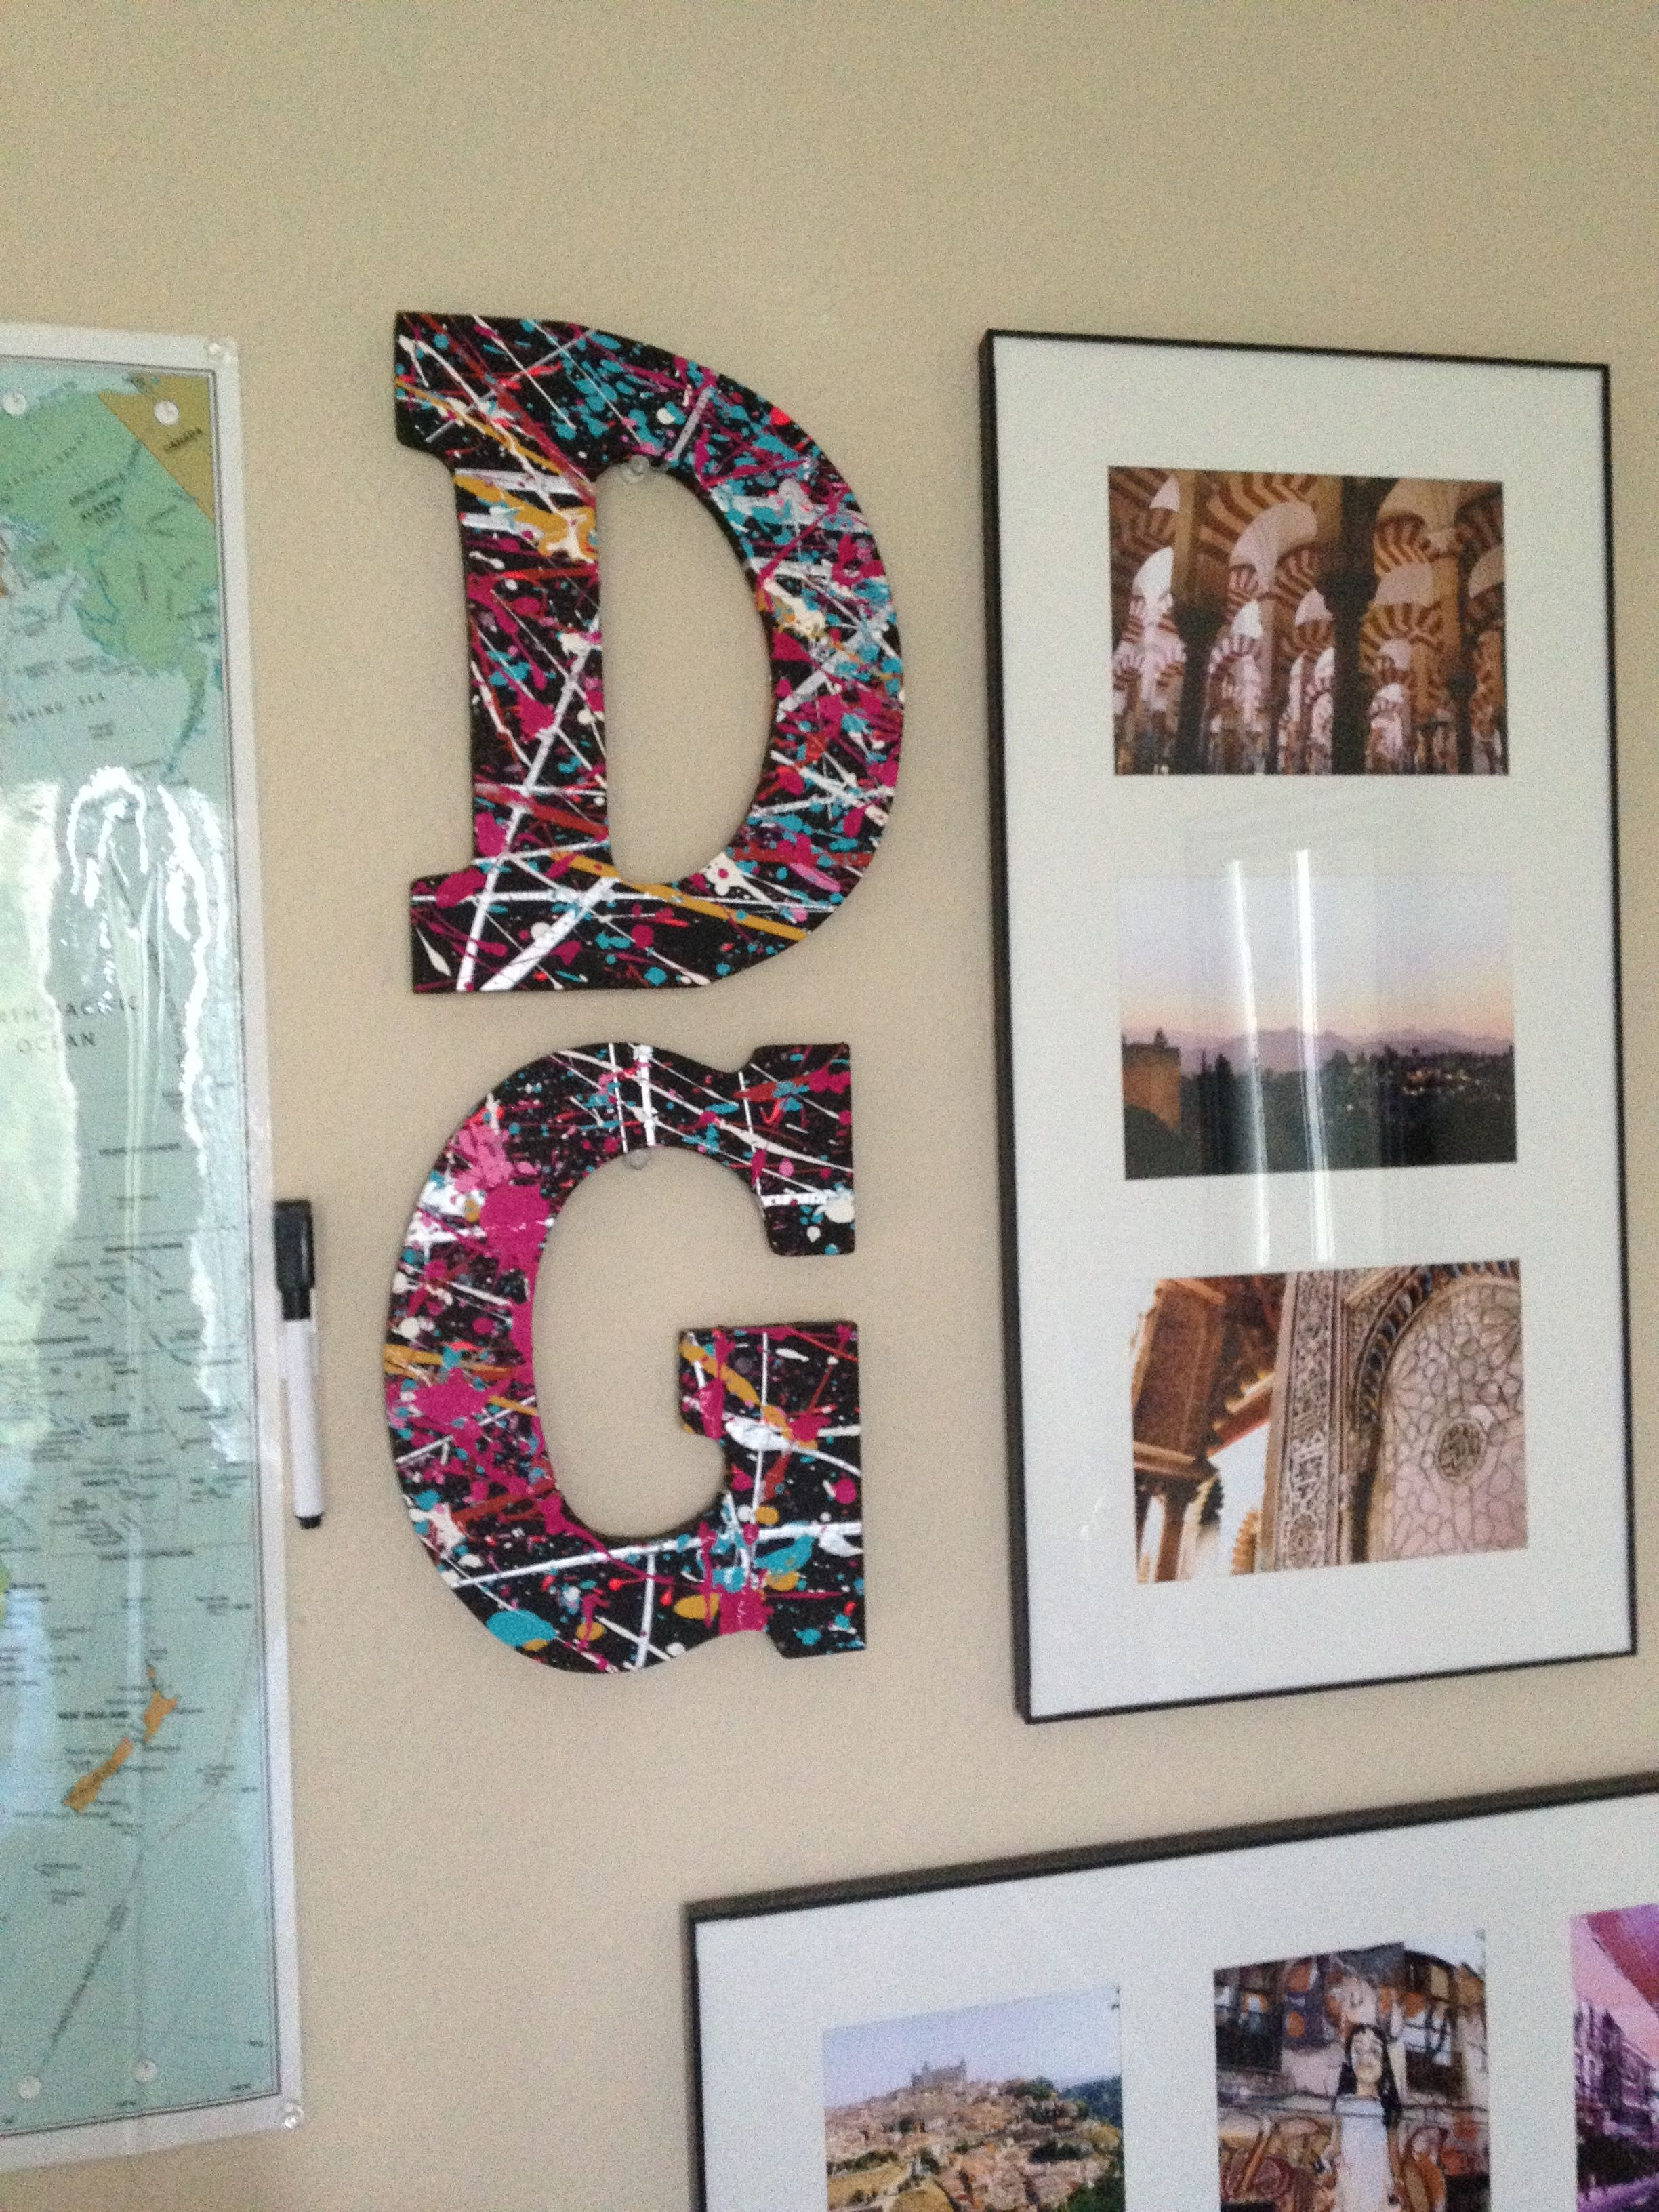 Buy Letters For Wall Best This Would Be Fun Buy Those Wooden Letters At Joann's Then Paint Review